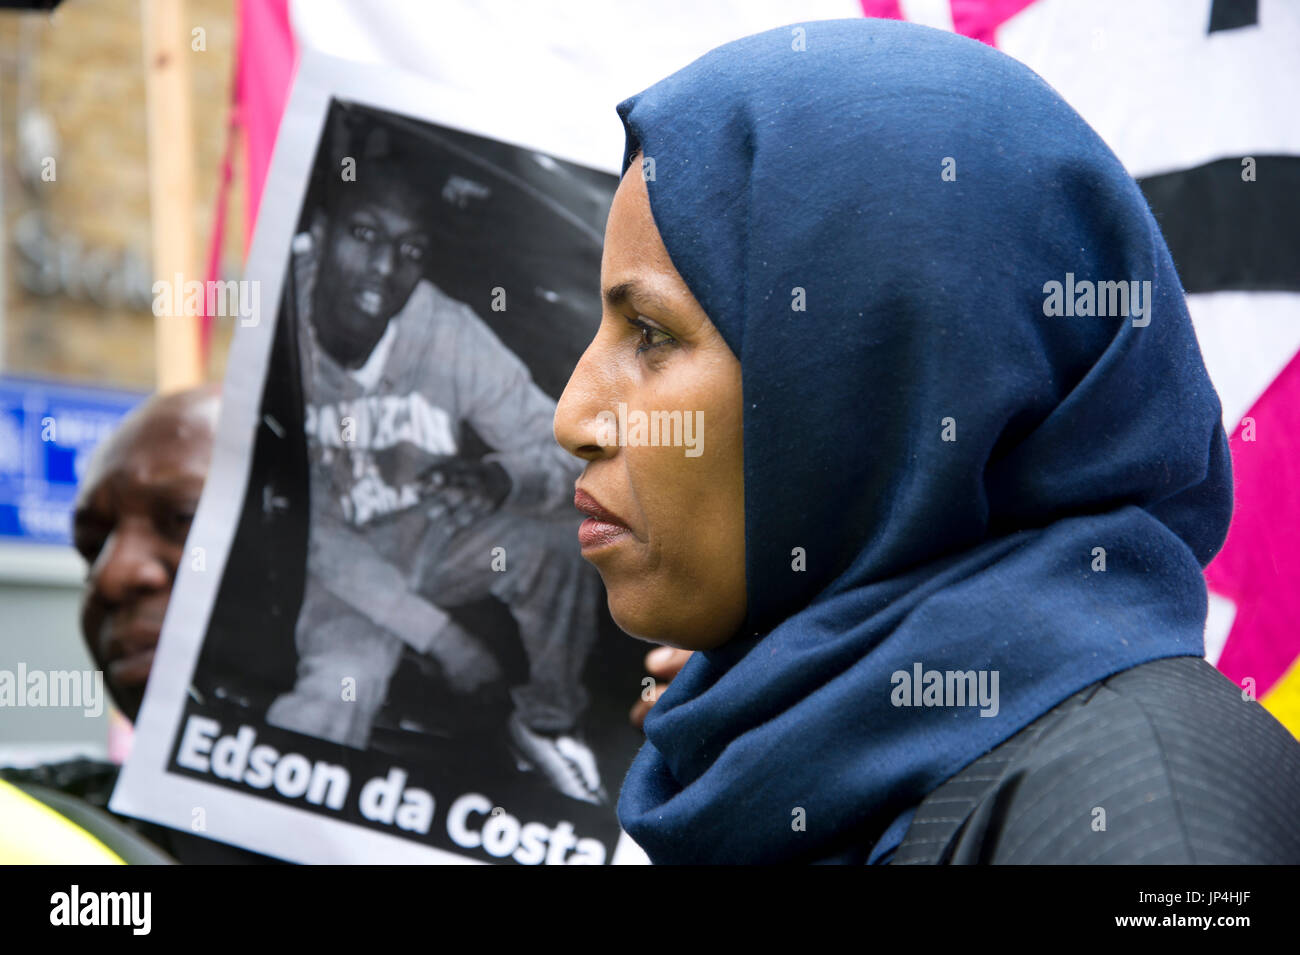 Rakhia Ismail speaks at a rally outside Stoke Newington police station, Hackney, after 20 year old Rashan Charles died  22nd July 2017. - Stock Image